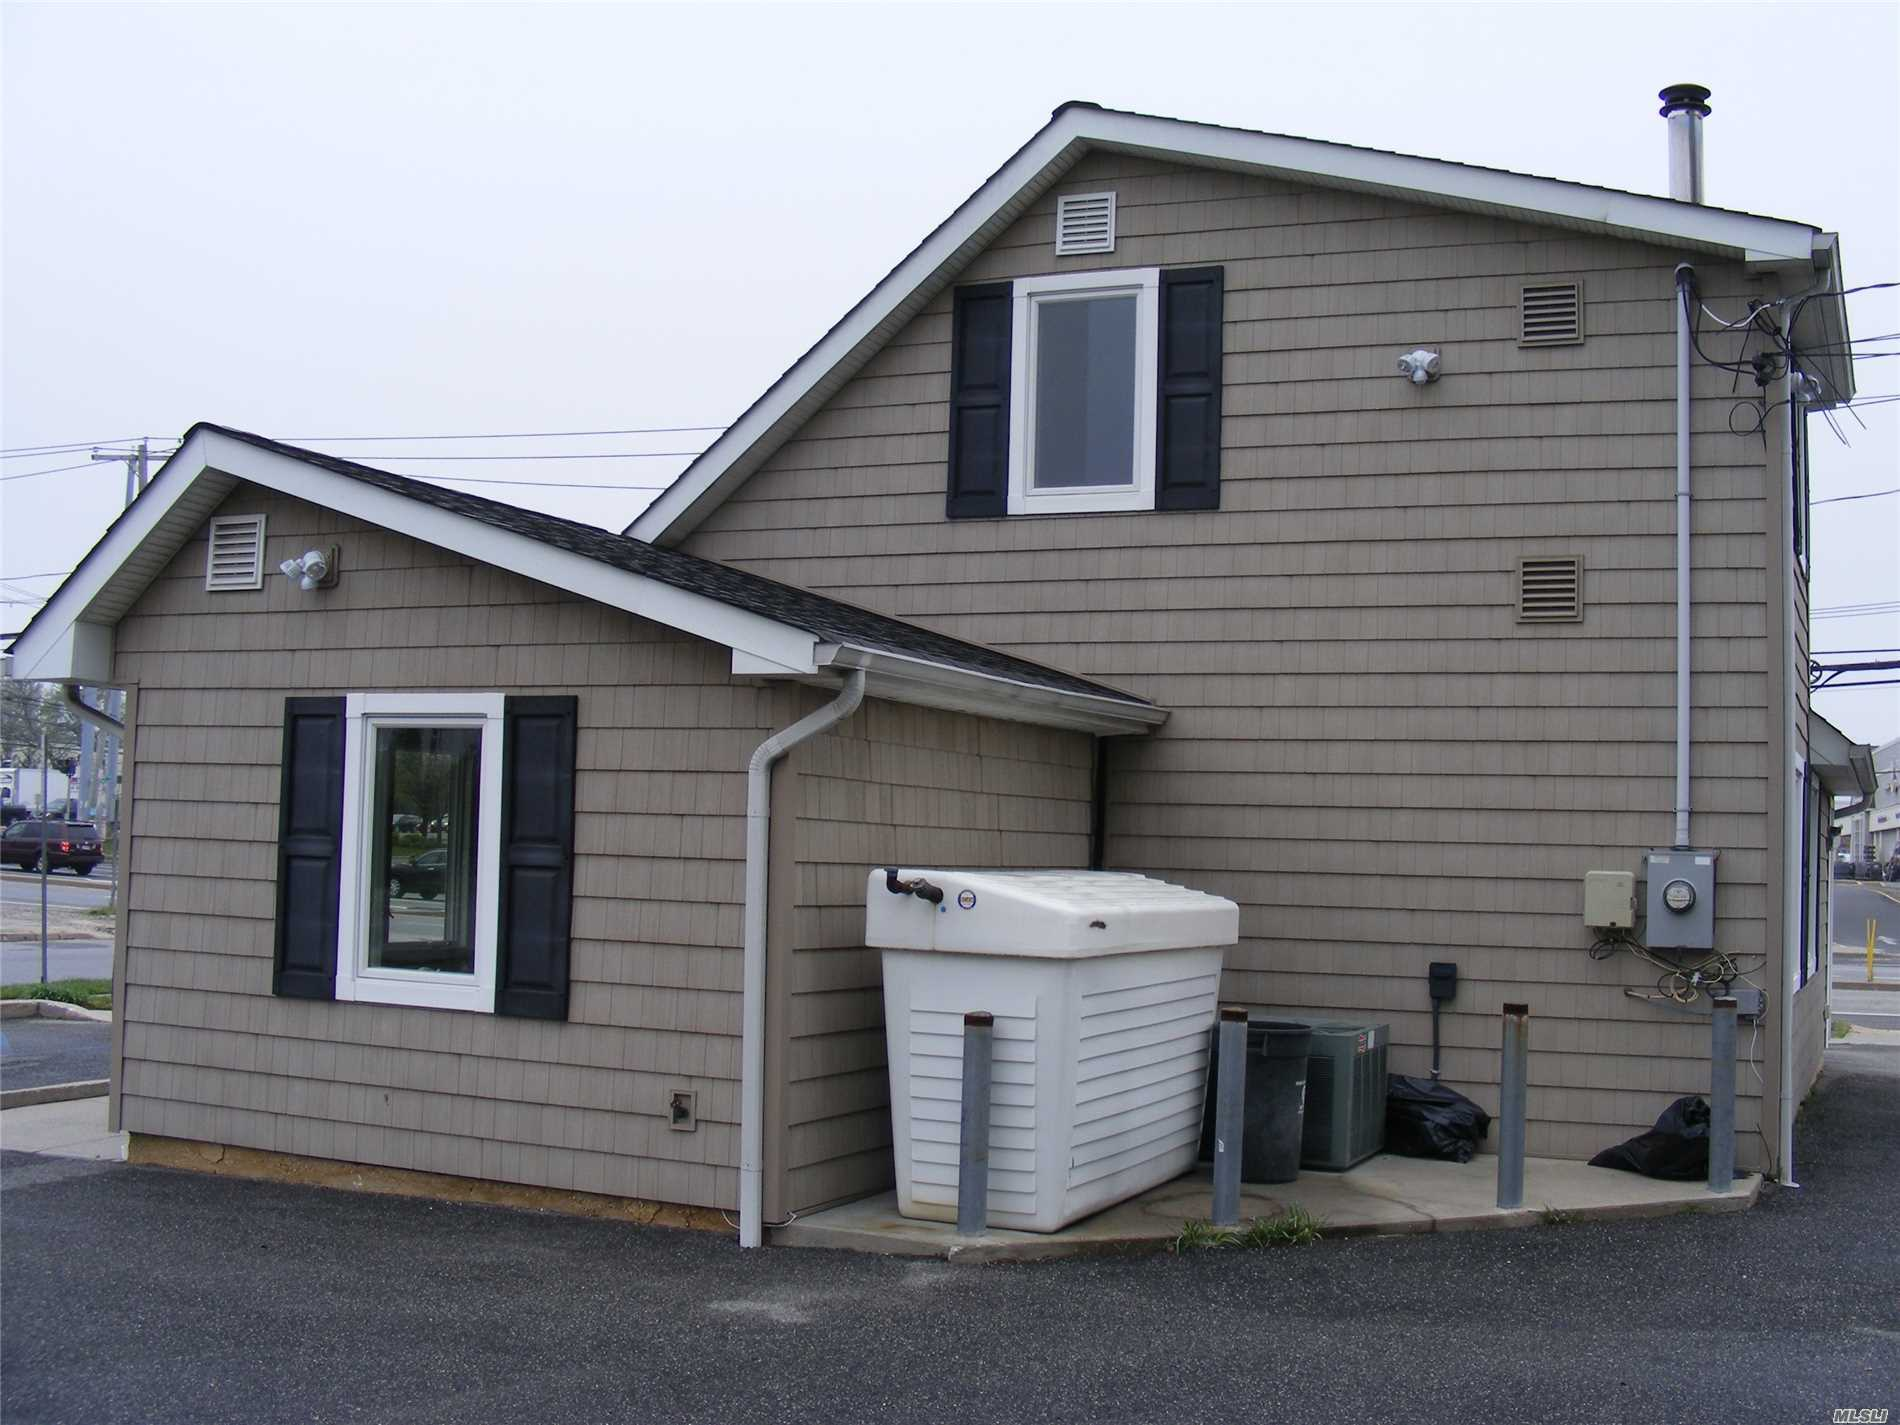 Custom Built One Family Dwelling, Ceramic Floors, 3 Zone Heating, Cac, Led Lighting In And Outside, Andersen Windows, Brand New Kitchen Appliances. Rent $3, 200.00 Plus Utilities, 1 Months Security, 1 Month Broker Fee, Please Send Credit Report, Proof Of Funds, And Credit Report.